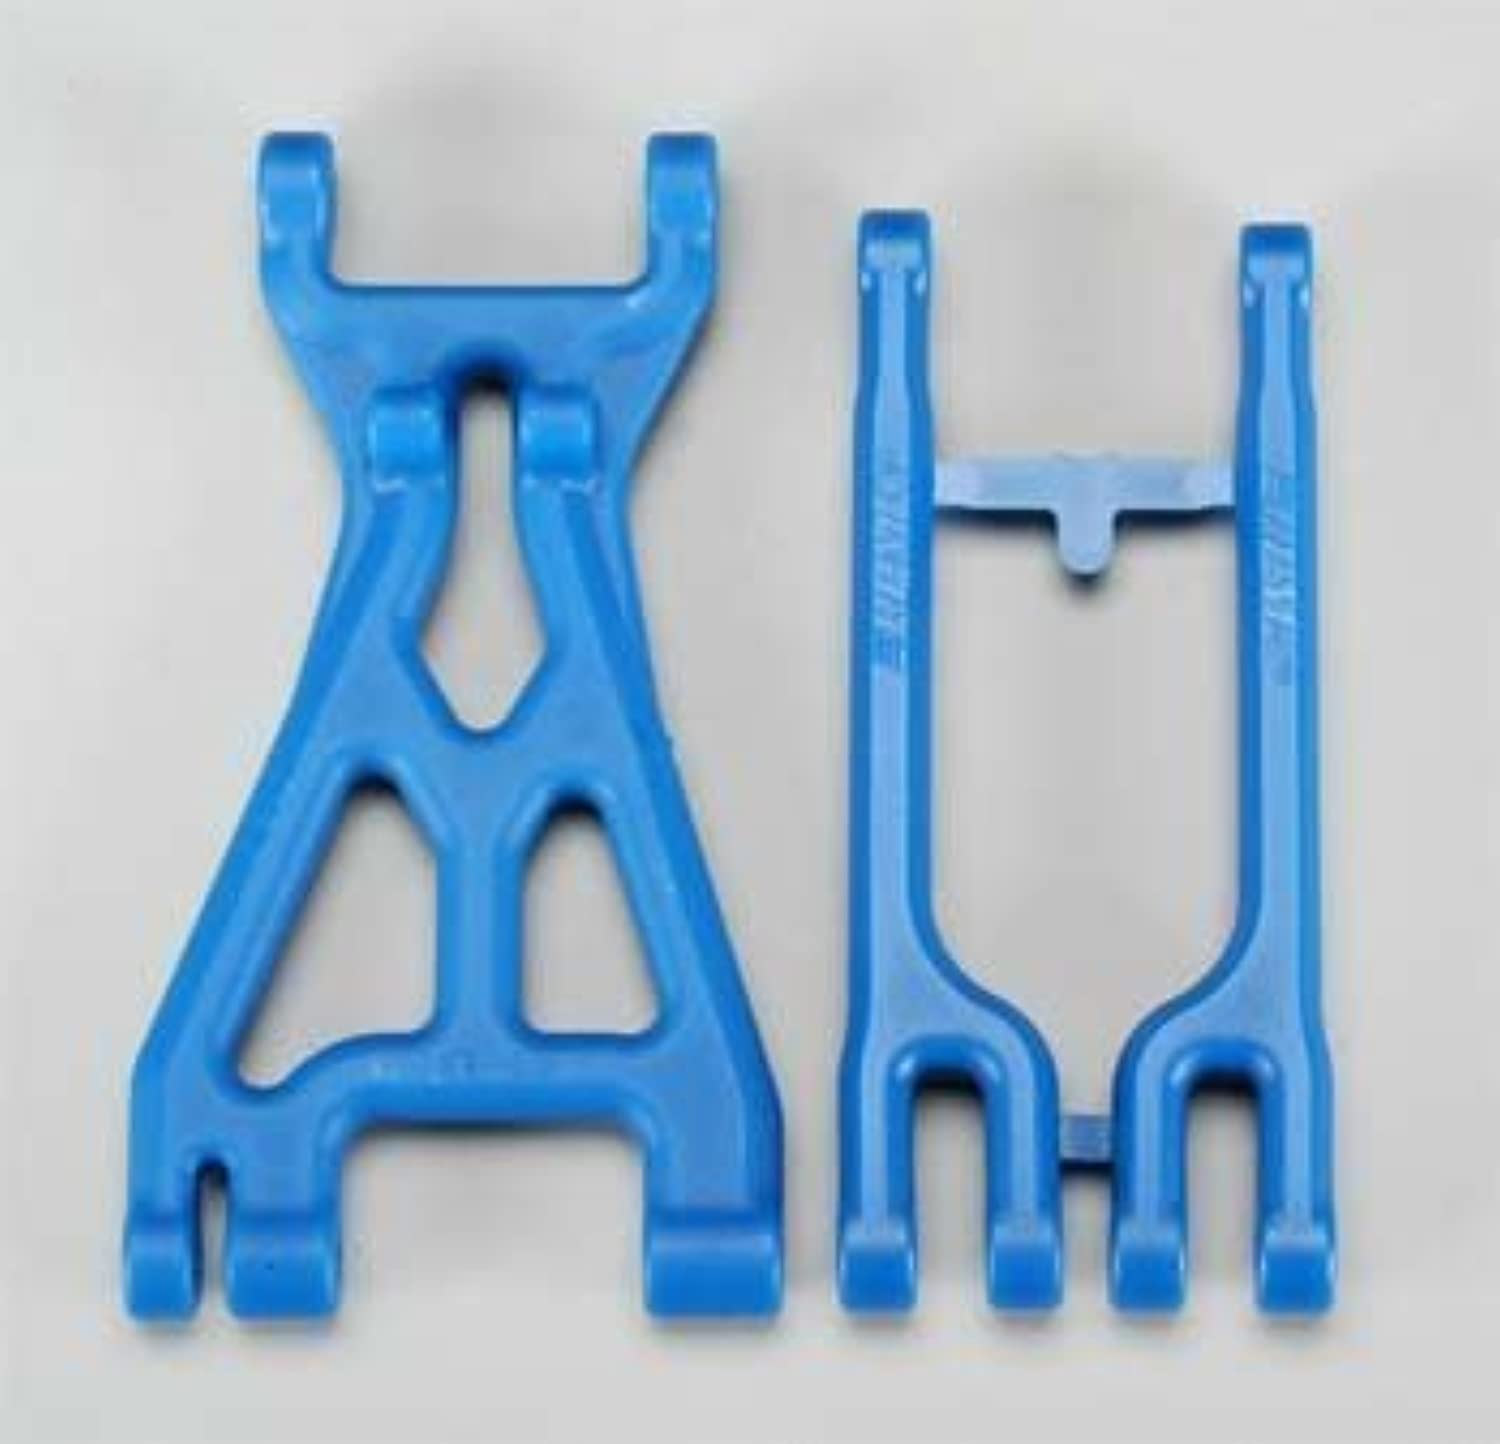 RPM Right Front or Left Rear Savage, X, XL and Flux Aarms, blueee by HRP Distribution